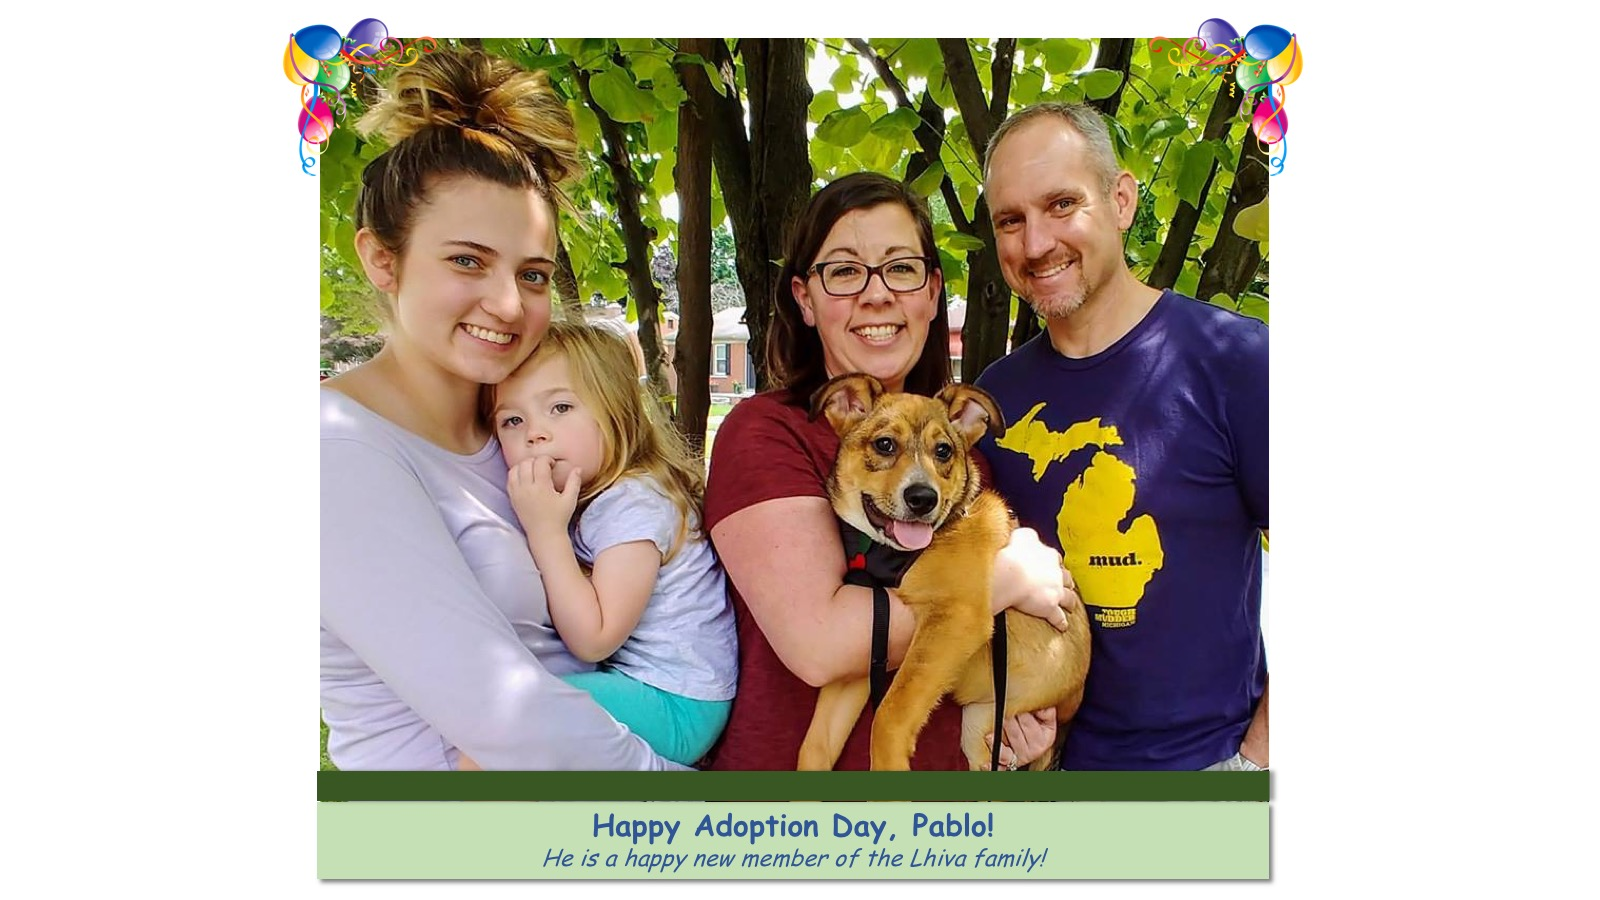 Pablo_Adoption_Photo_2018.jpg